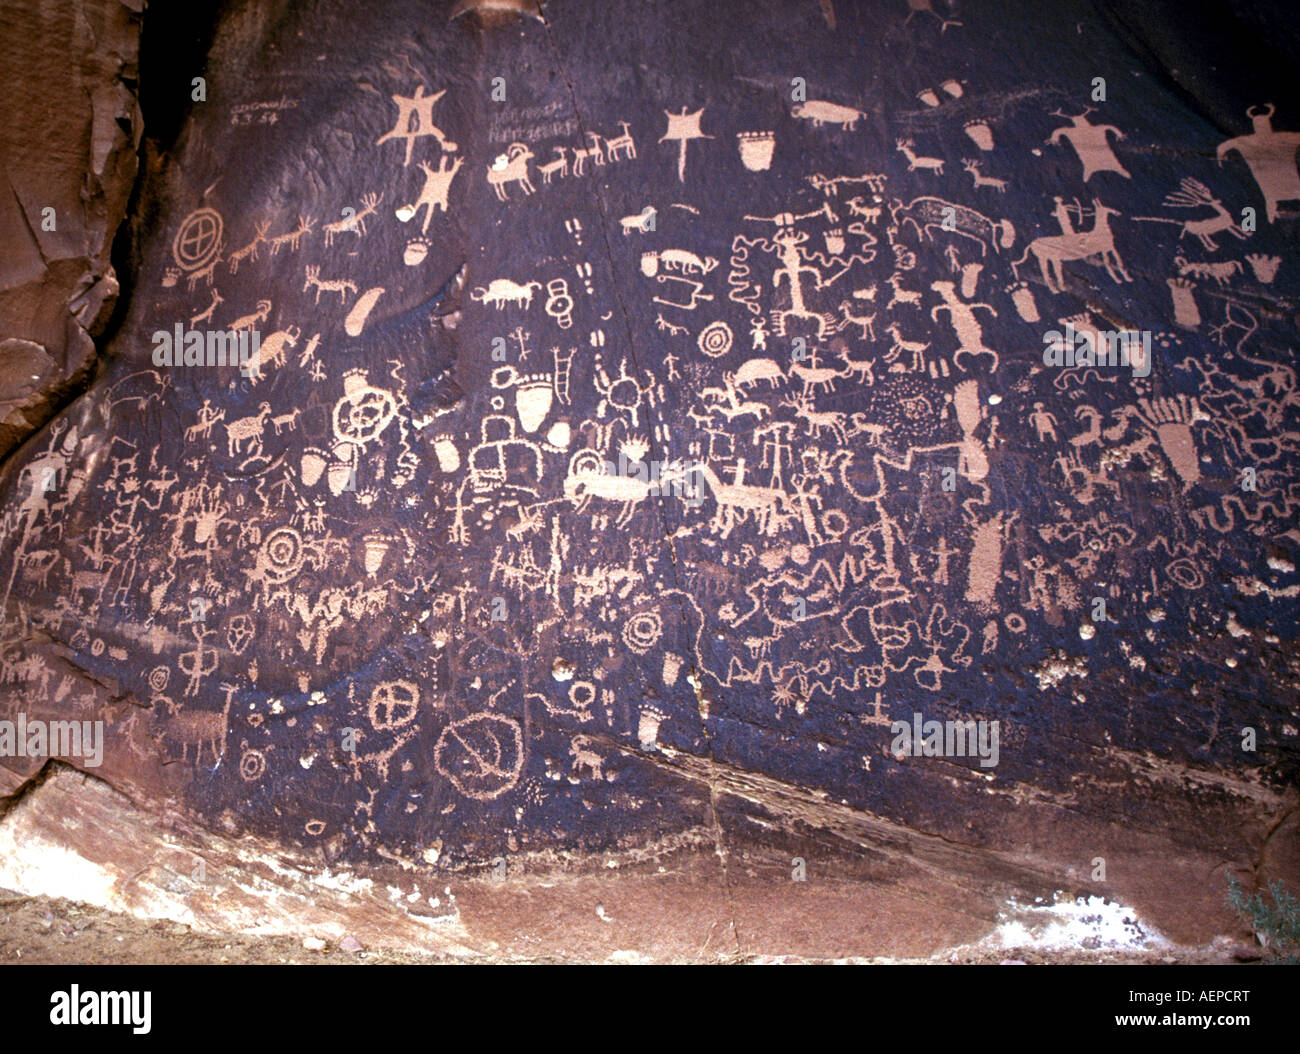 Prehistoric petroglyphs or Anasazi Indian rock carvings carved into sandstone boulders at Newspaper Rock, southern - Stock Image